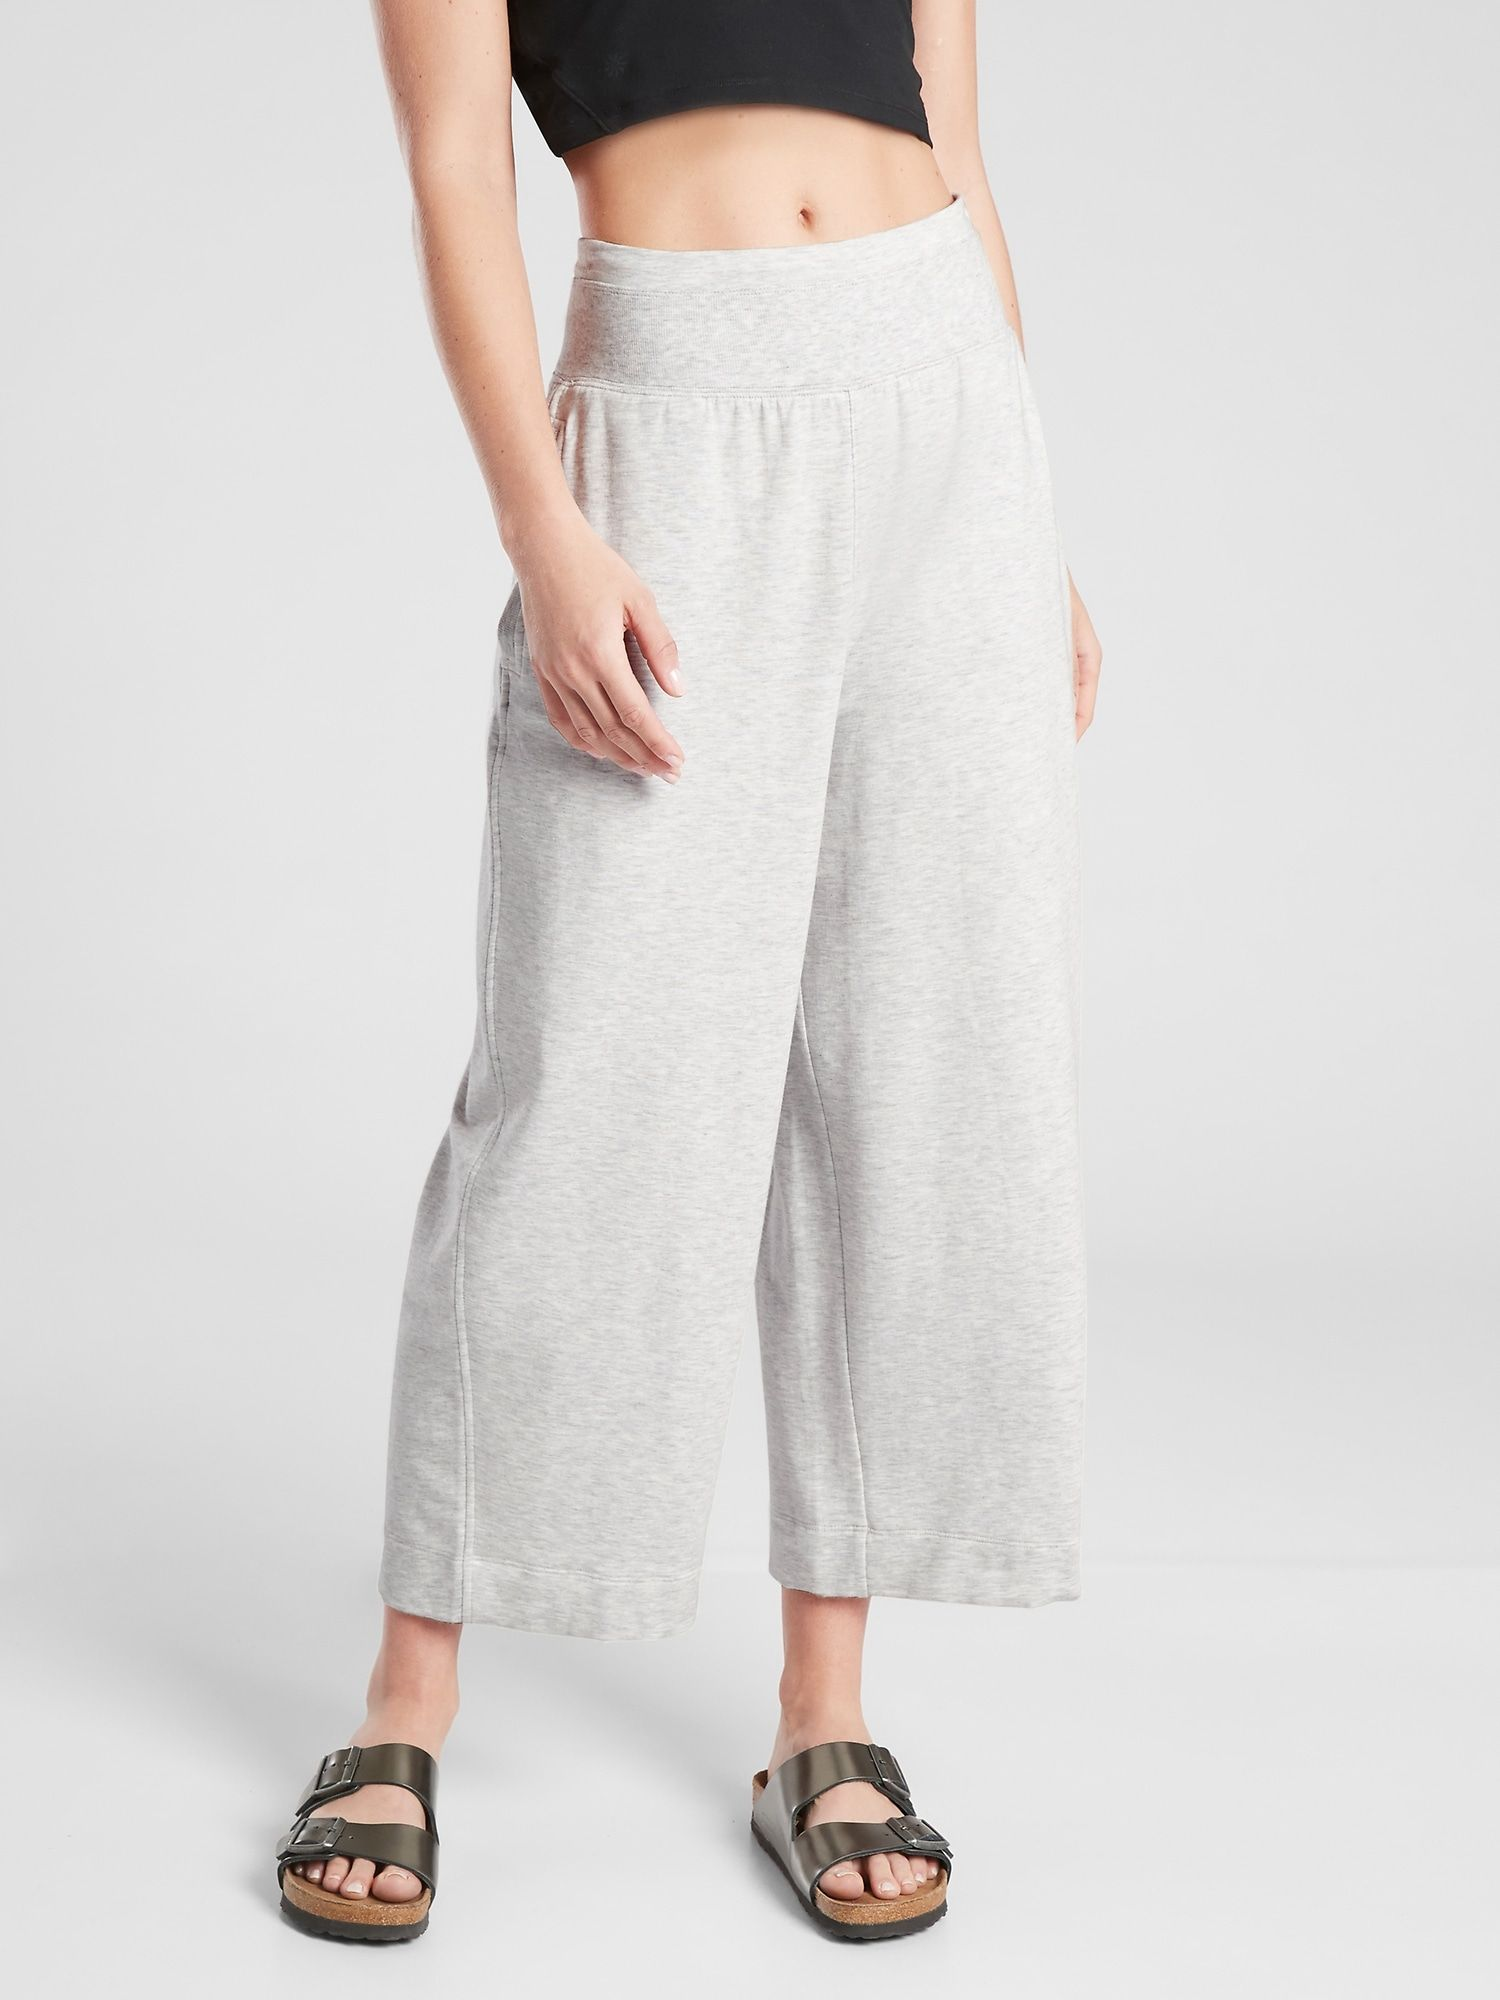 Free Flow Culotte | Athleta